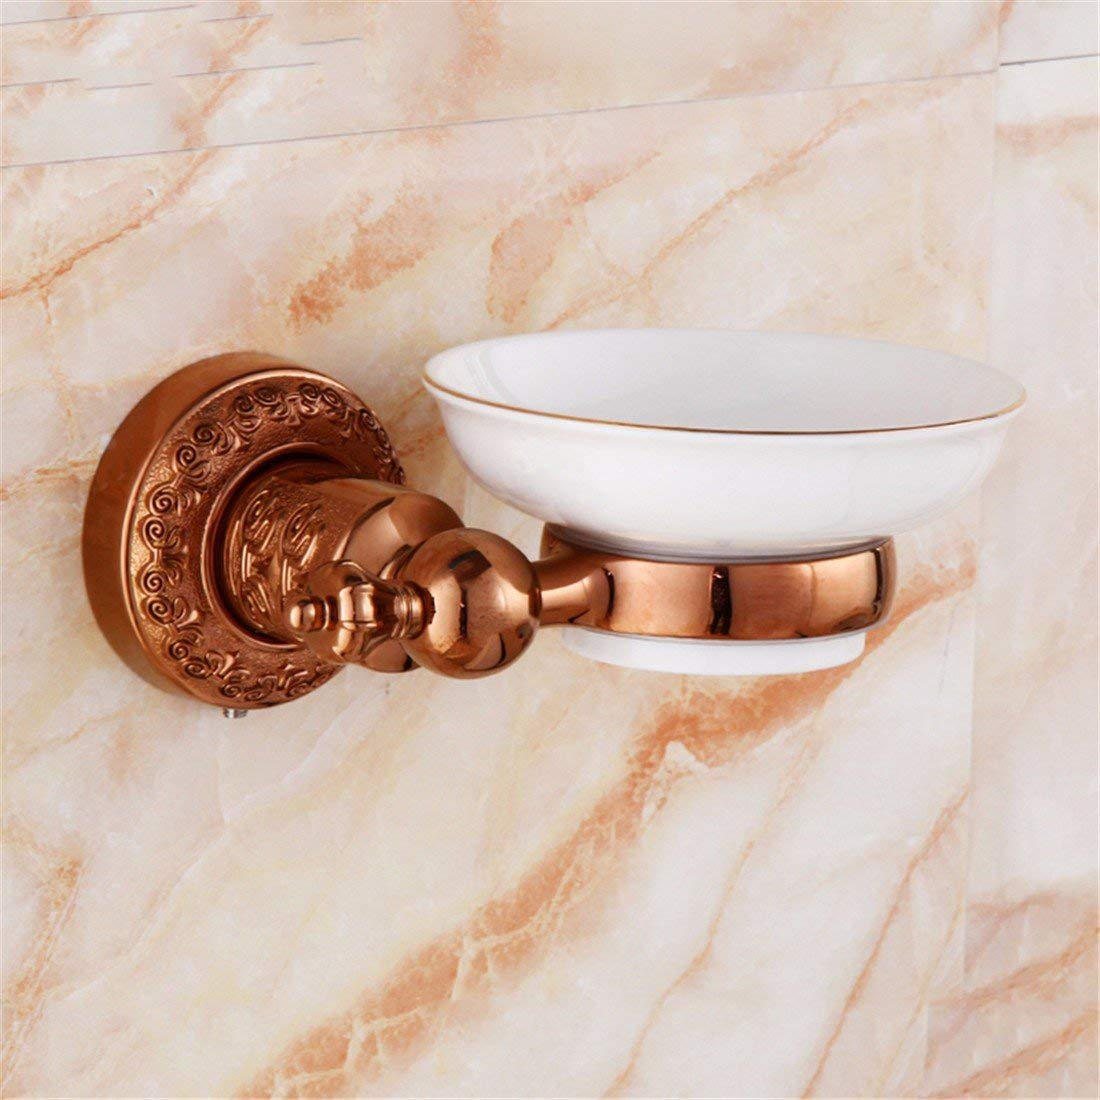 LAONA European-style rose gold-copper pipe carved wall in the bathroom suite bath towel rack antique Towel racks, soap dish